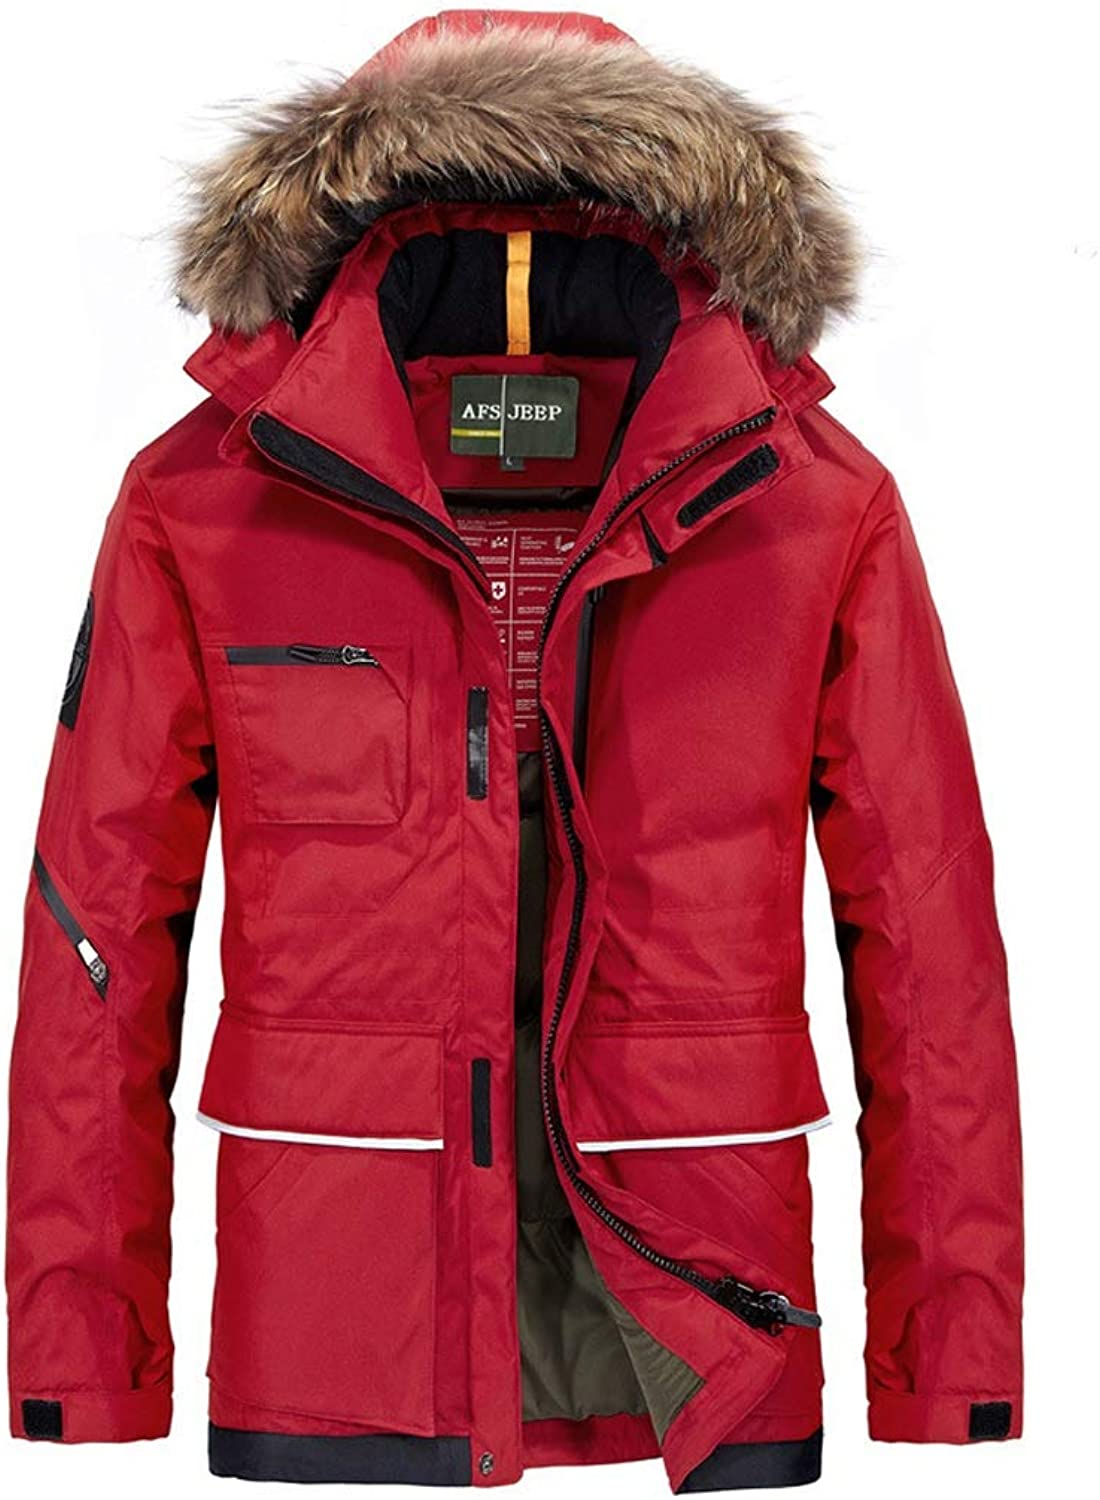 New Down Jacket, Men's Long Thick Hooded Jacket with Large Fur Collar, Winter Outdoor Cold Jacket, Suitable for Cold Weather (color   Red, Size   XXL)